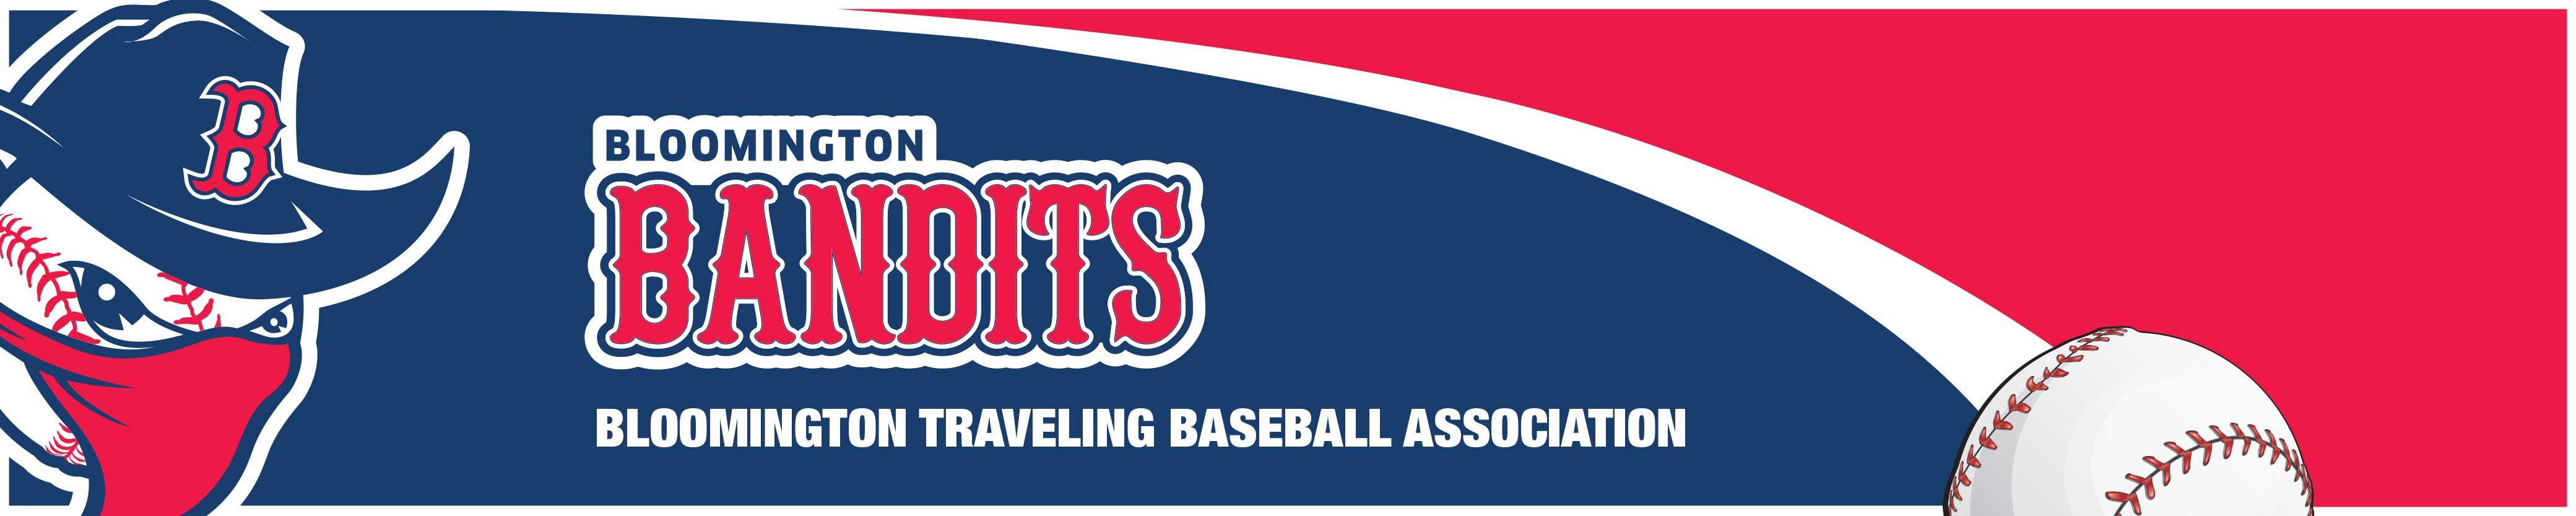 Bloomington Traveling Baseball Association